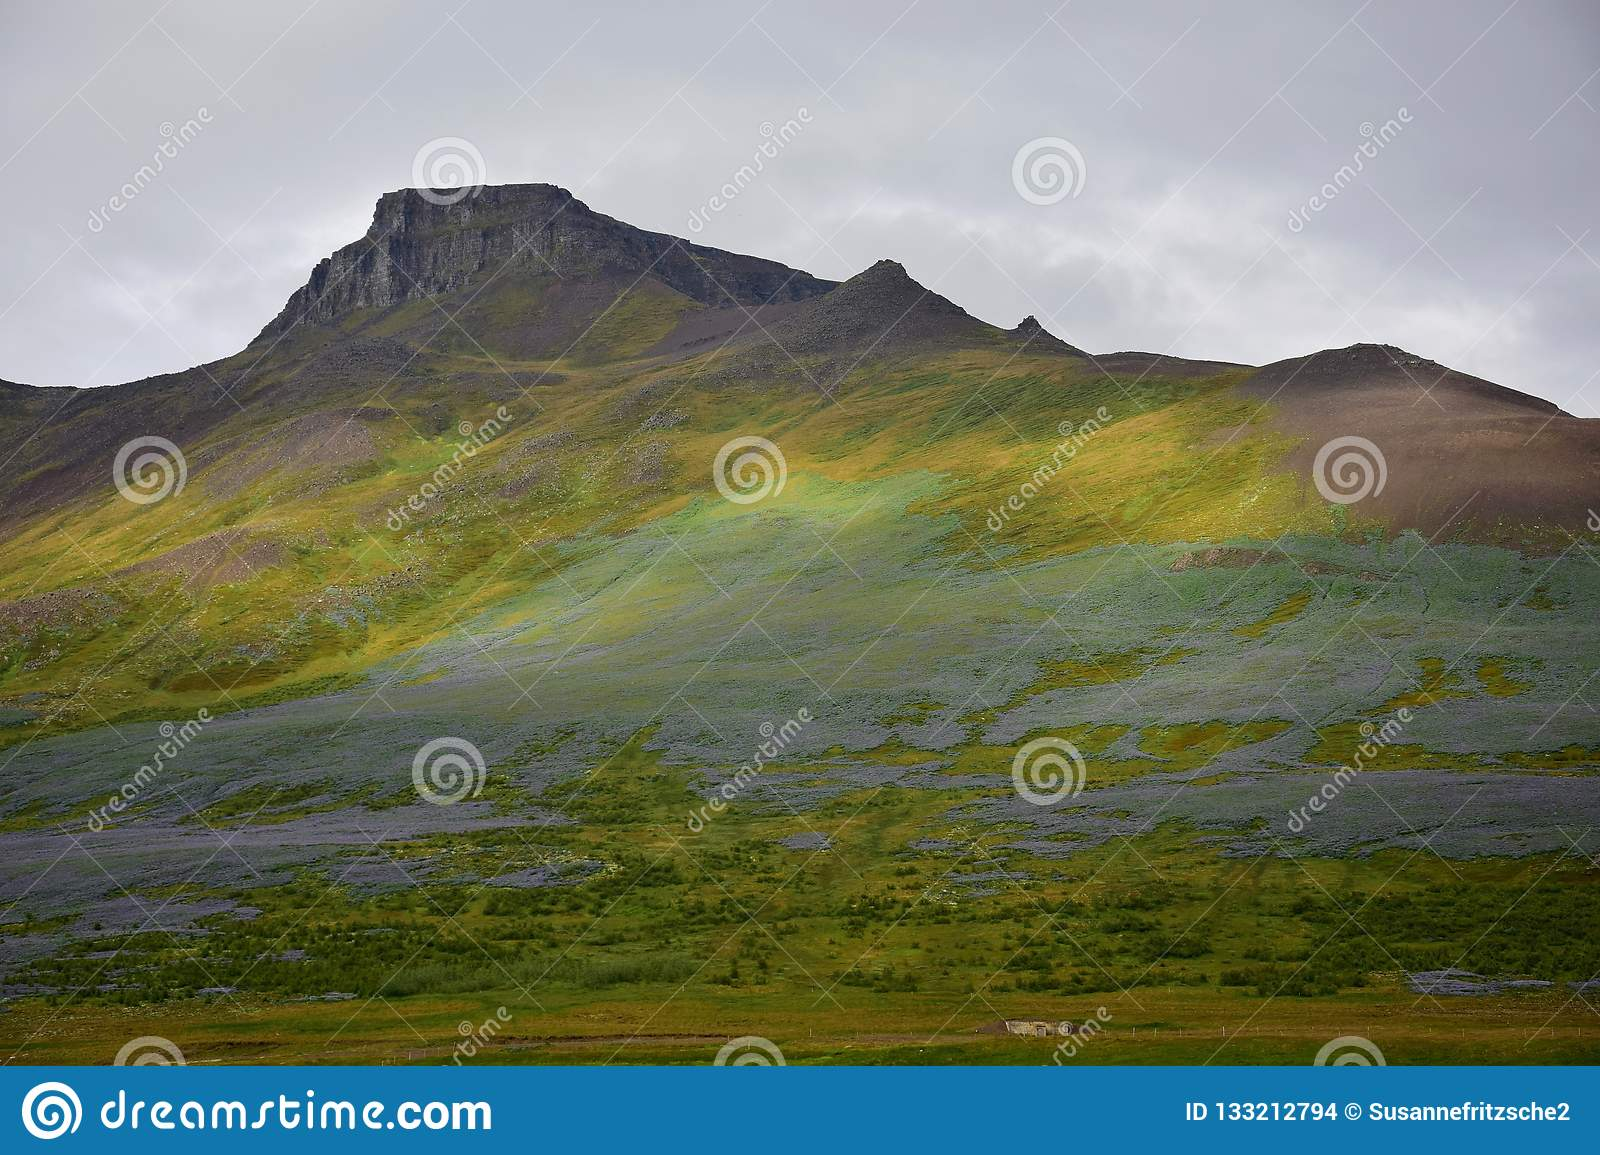 Icelandic landscape. The mountain Spakonufell near the town of Skagaströnd